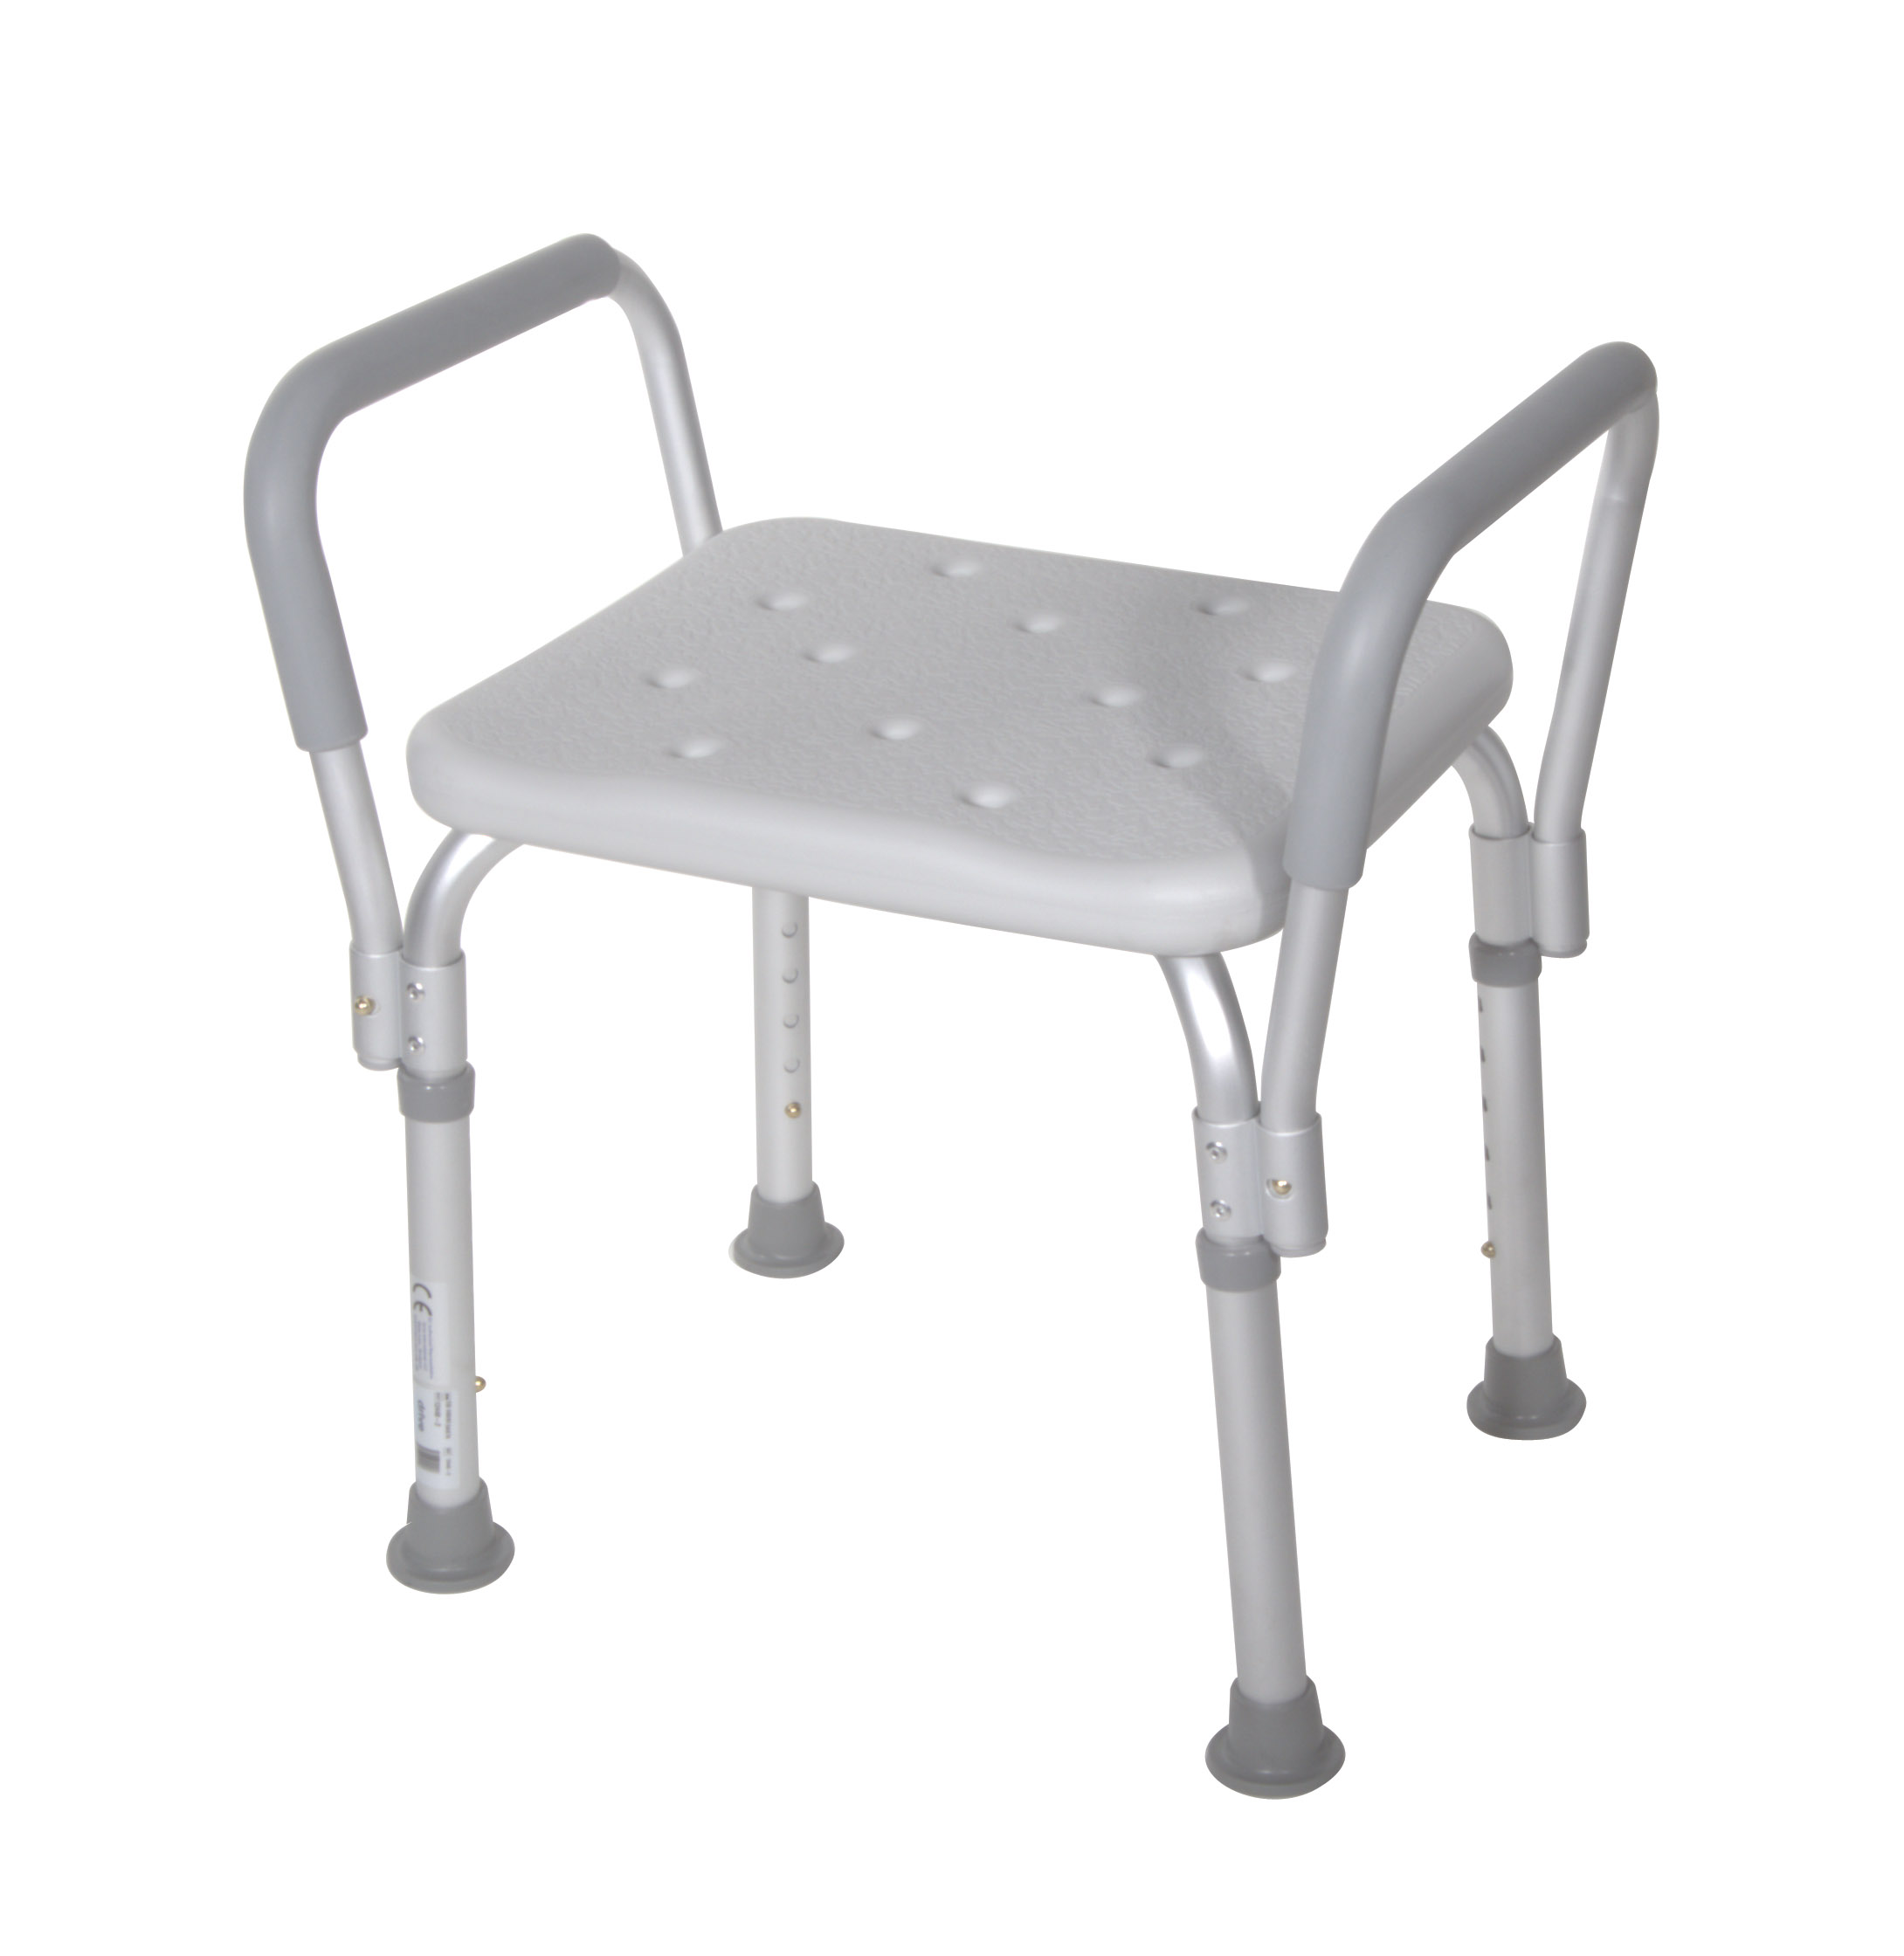 Aluminum frame is lightweight, durable and corrosion proof.